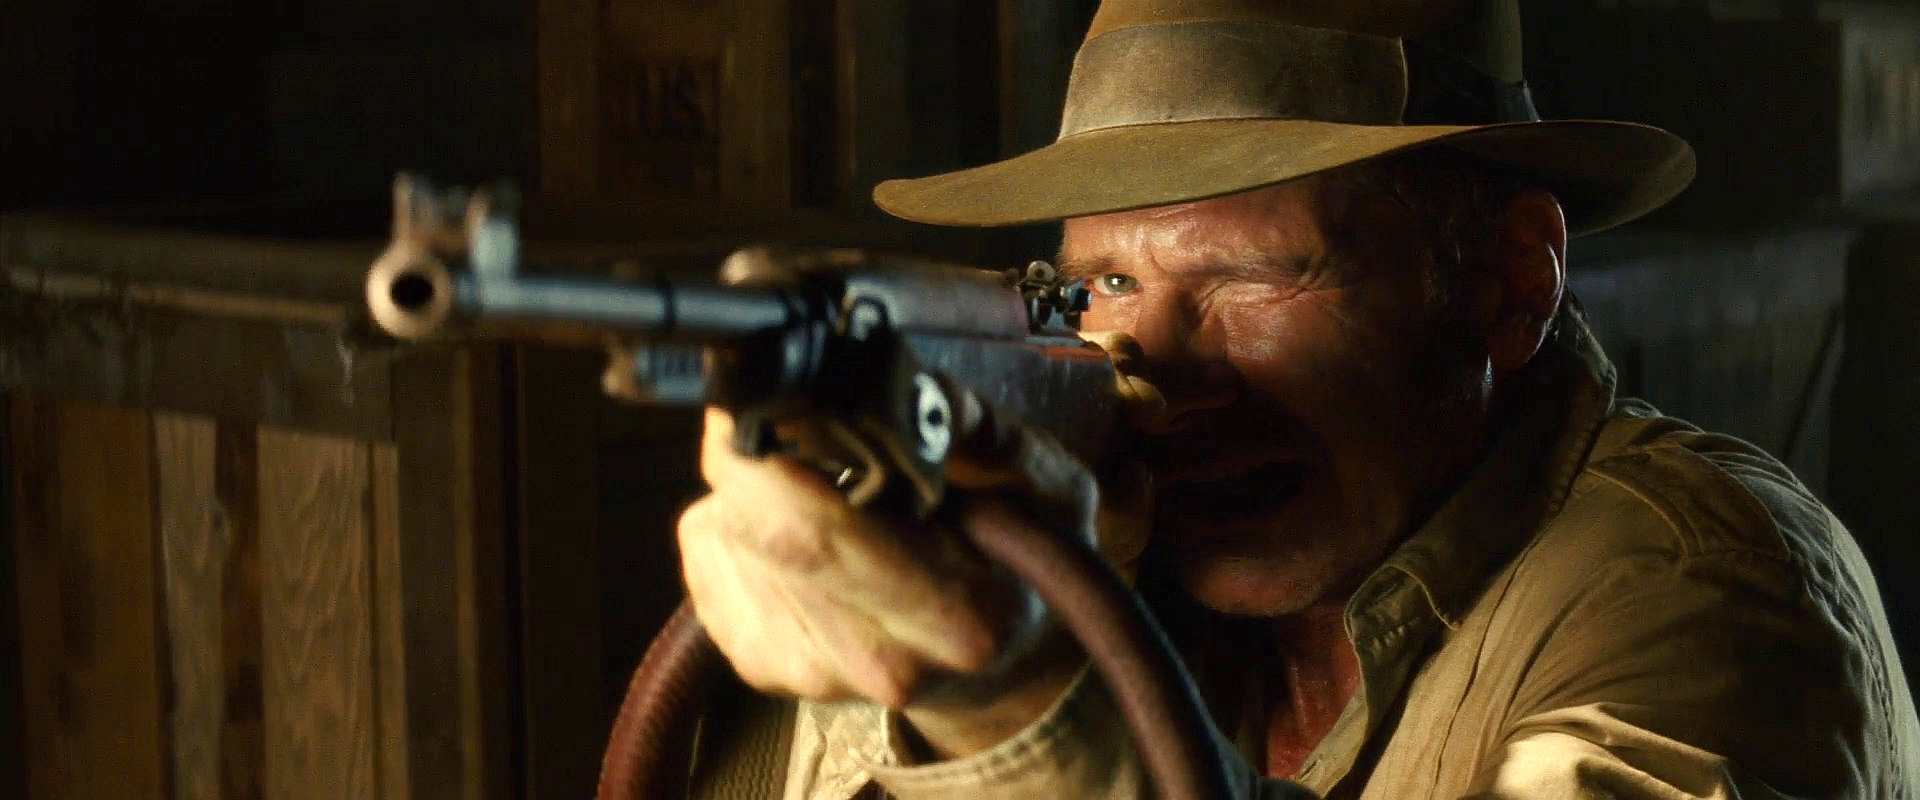 universal m1 carbine Indiana Jones and the Kingdom of the Crystal Skull